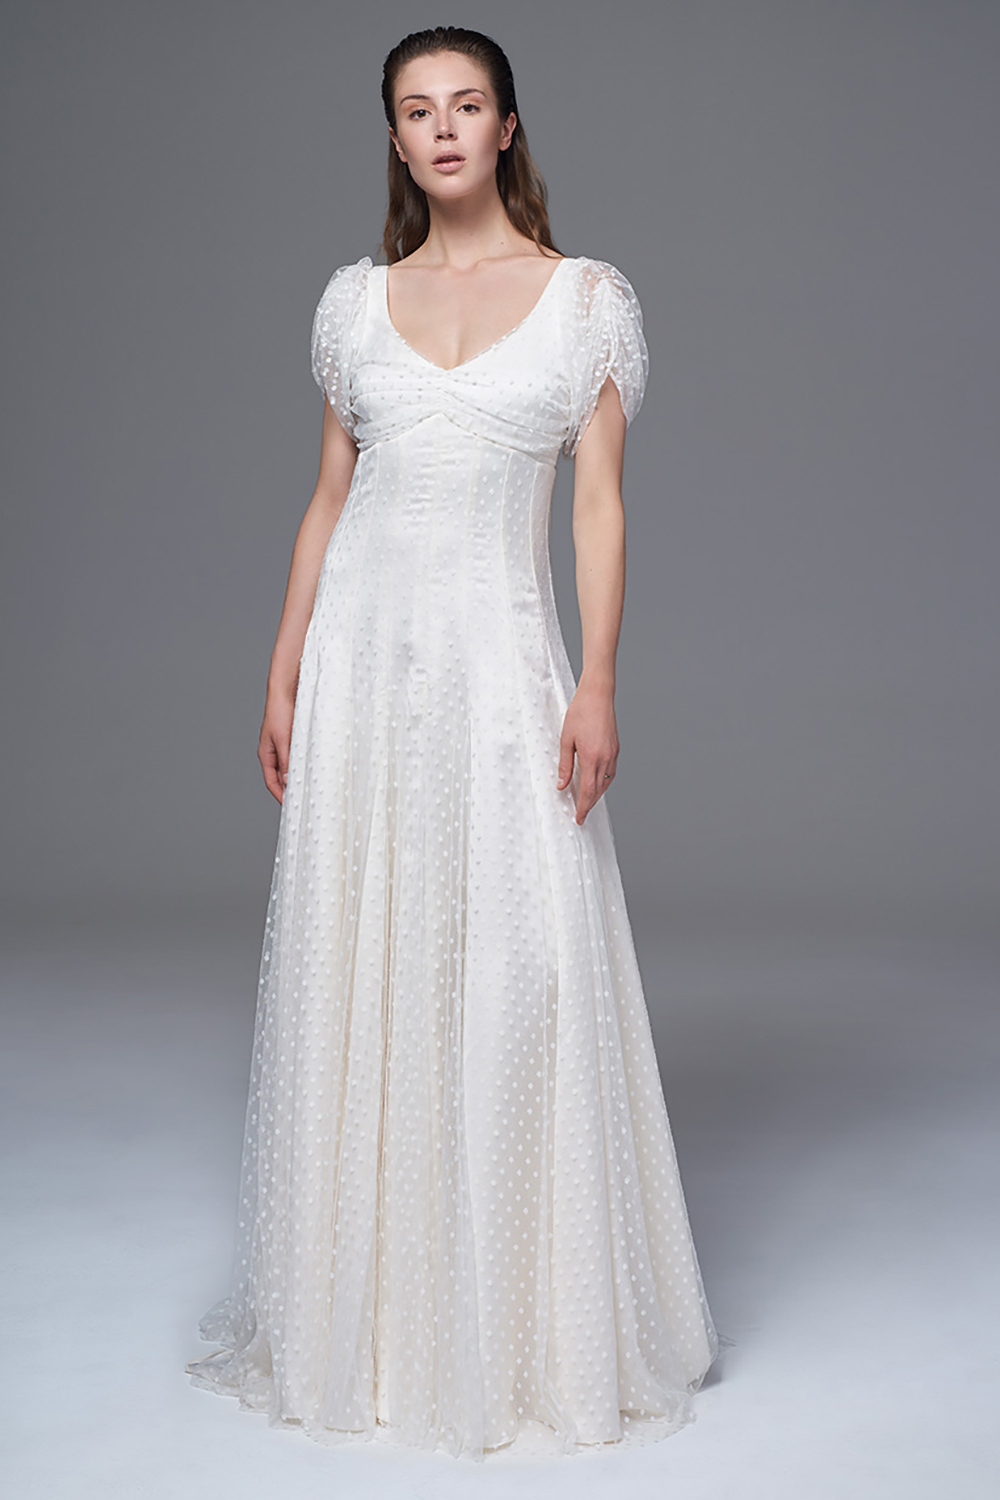 THE KATE MOSS SPOTTY TULLE DRESS WITH SOFT SLEEVES AND BUTTON DETAILING. BRIDAL WEDDING DRESS BY HALFPENNY LONDON